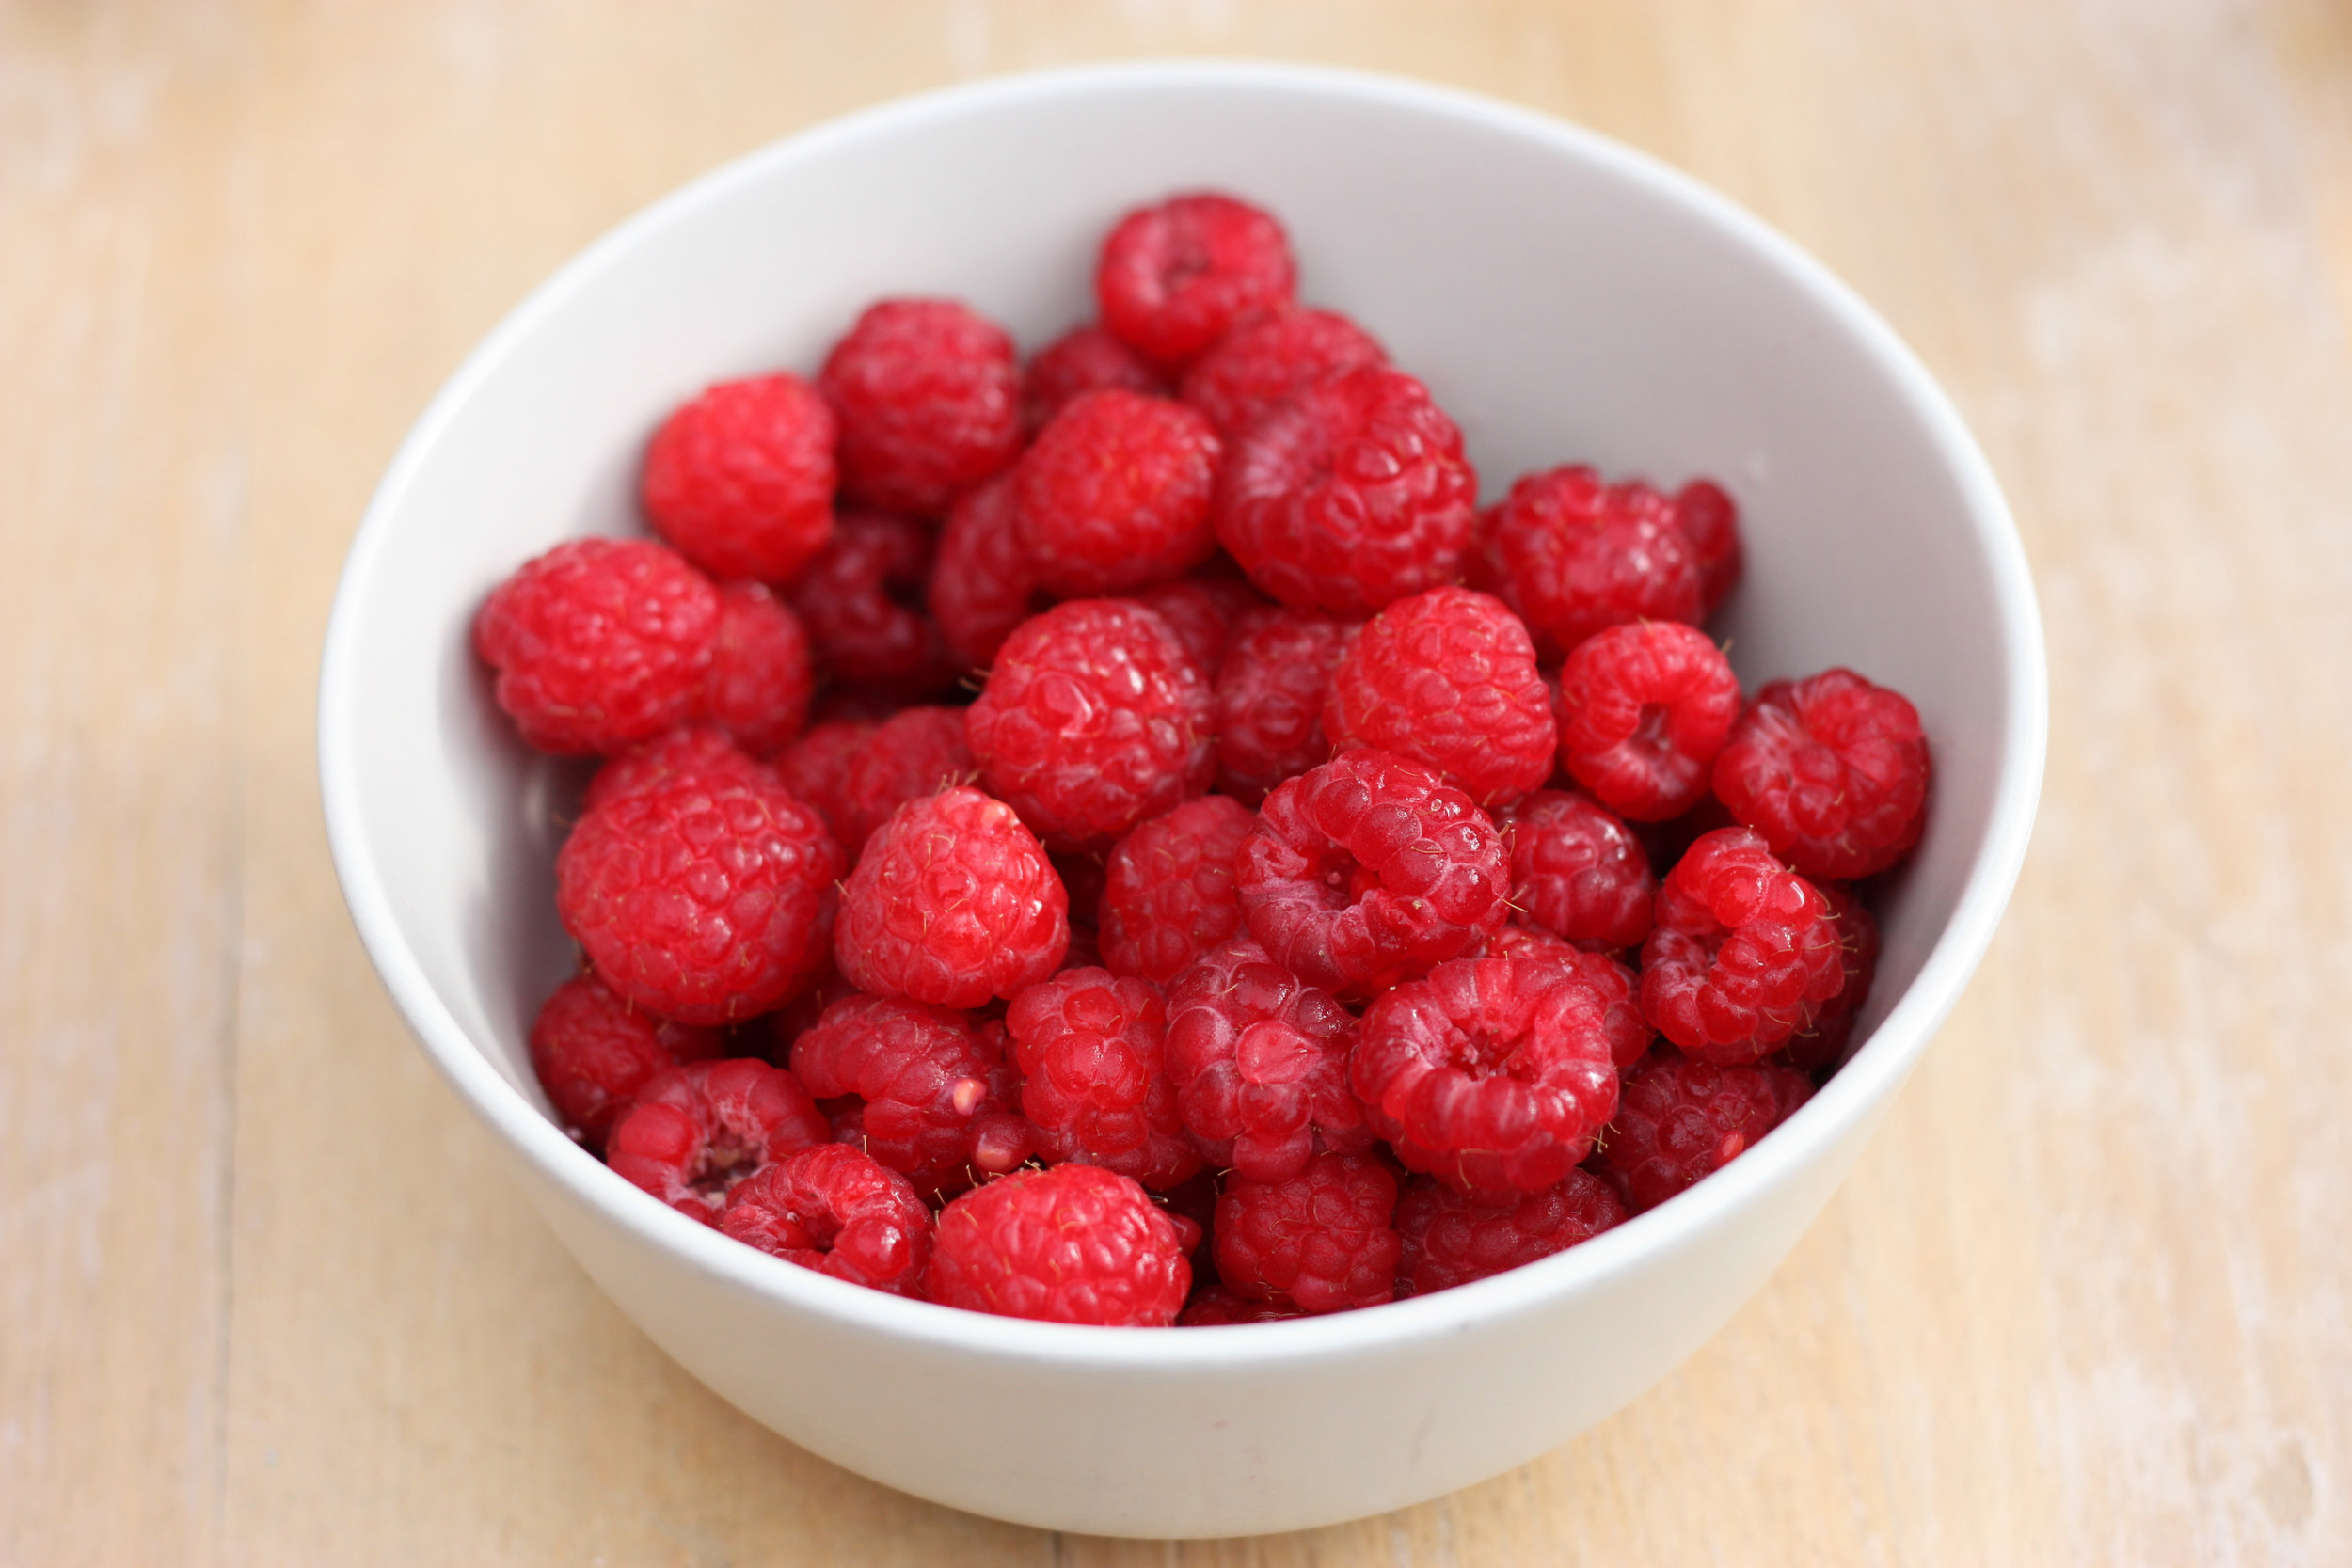 Canva - Selective Focus Photography of Raspberries in White Ceramic Bowl.jpg